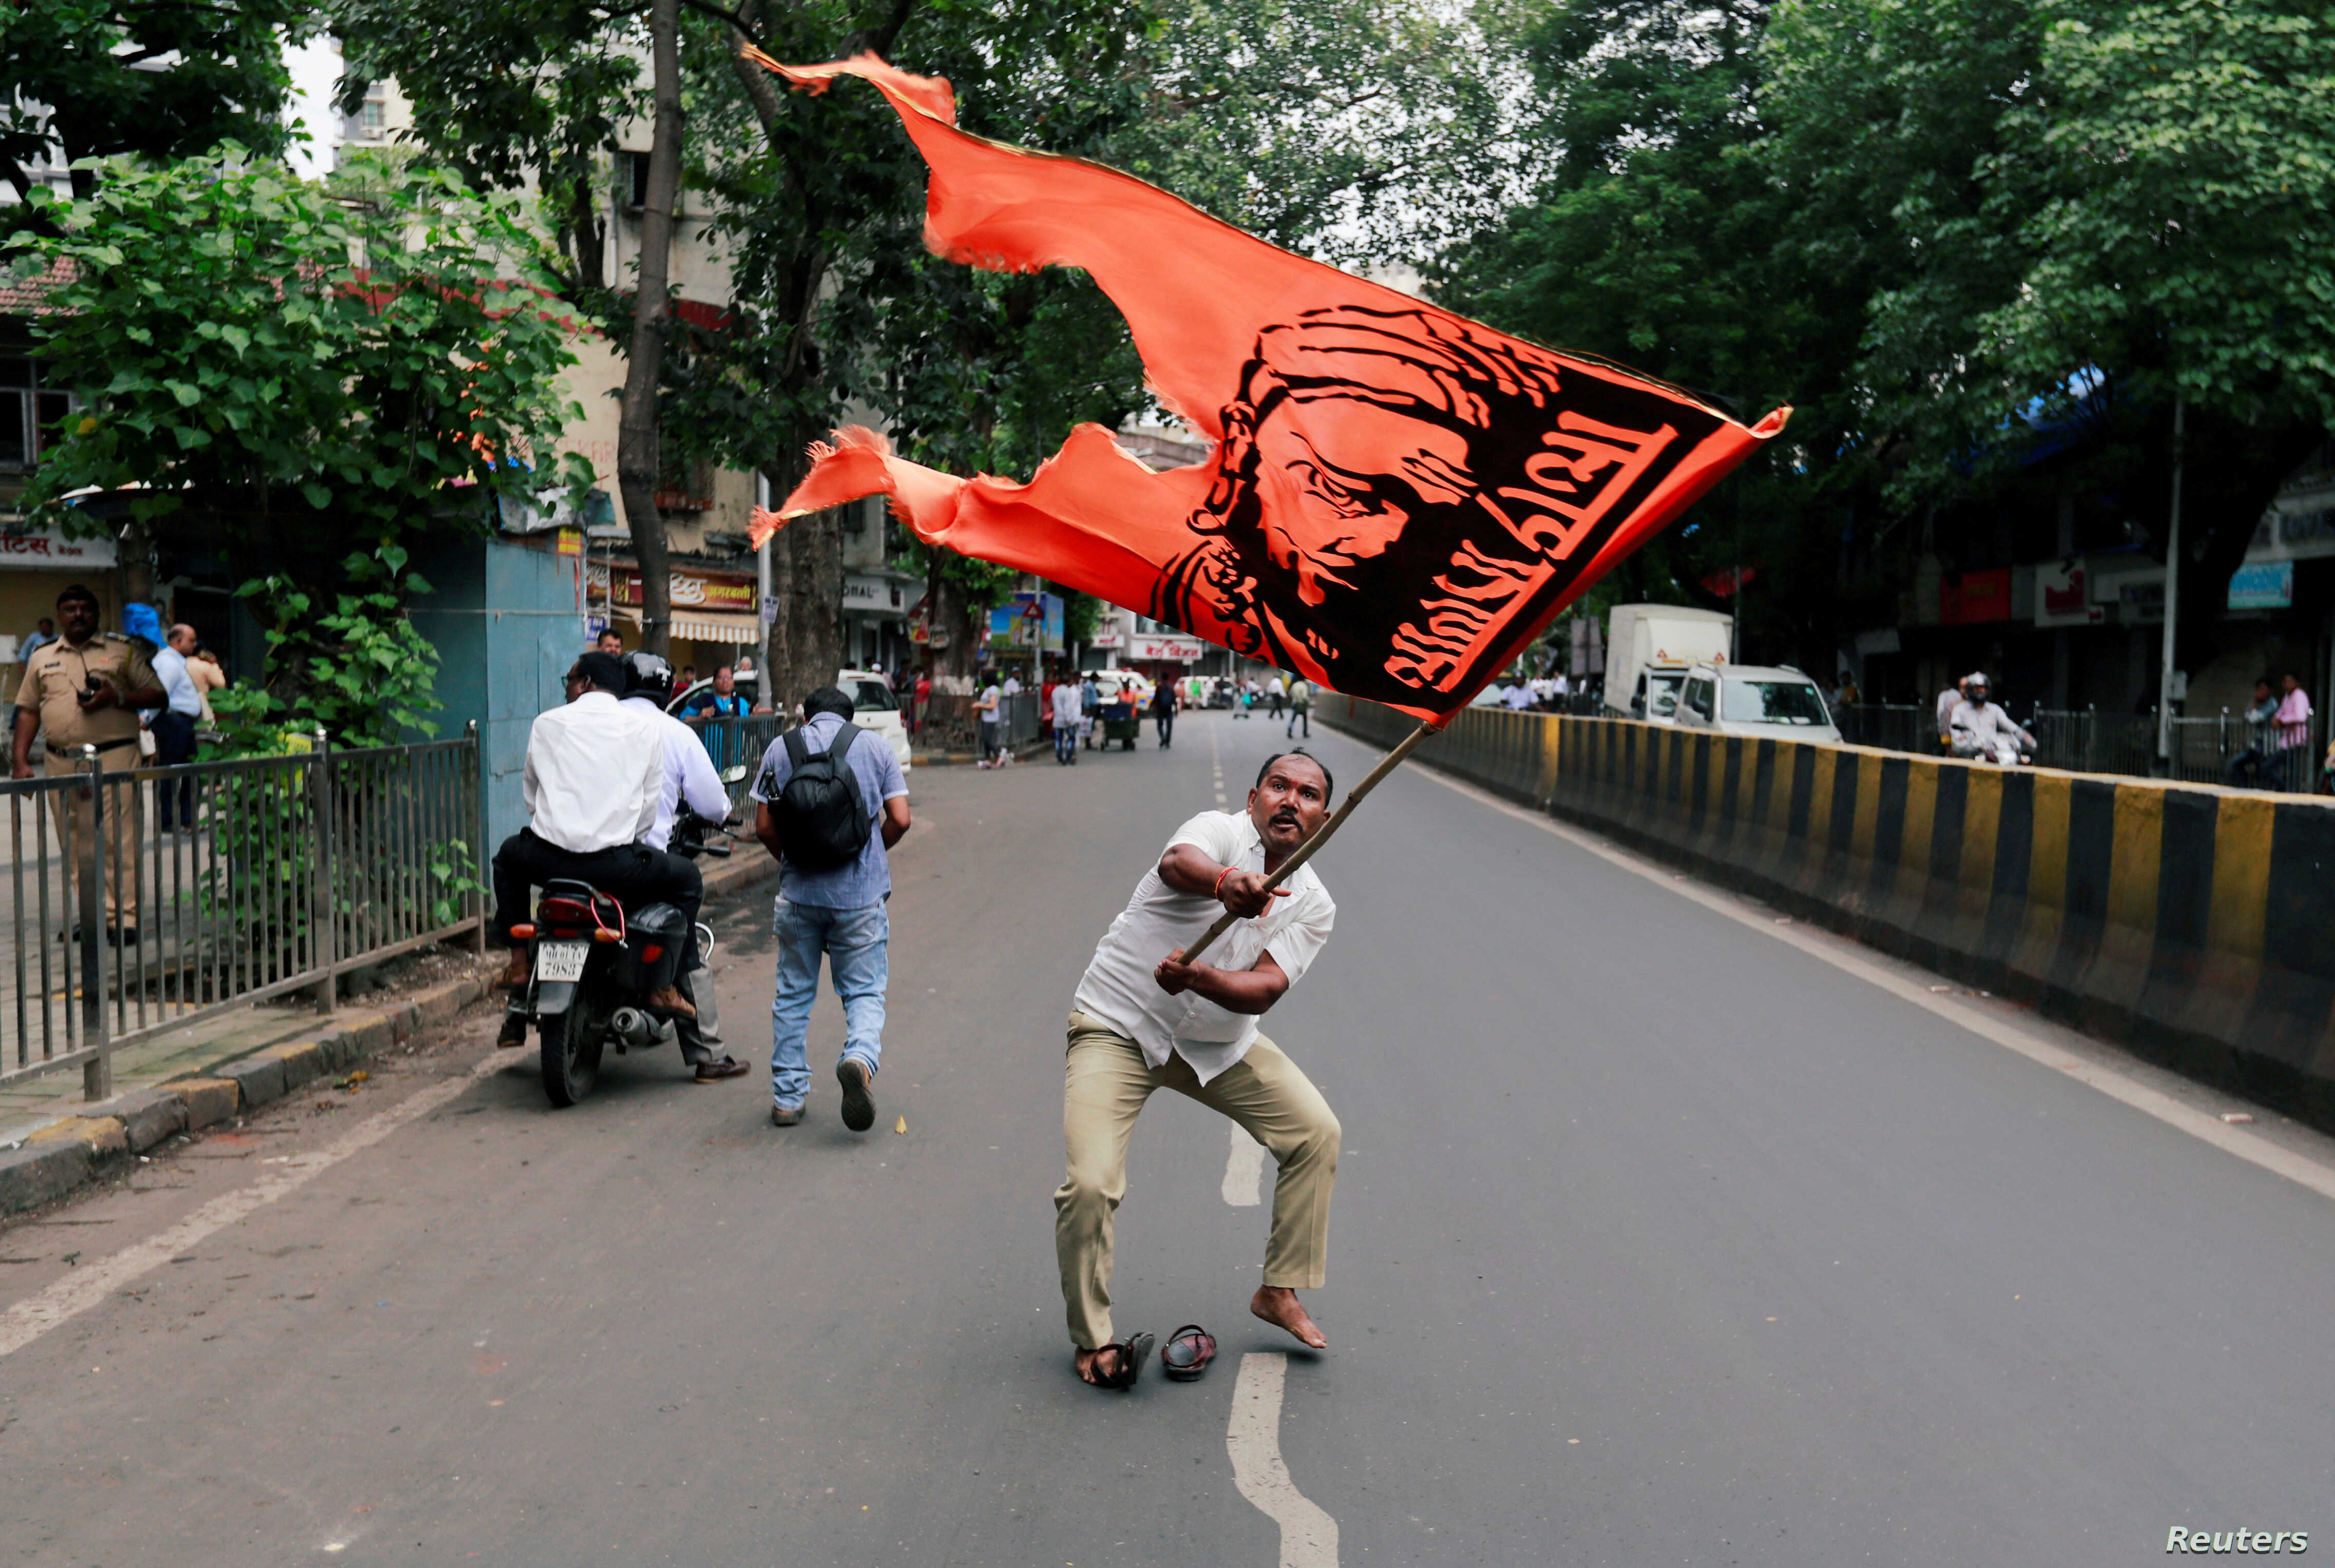 FILE - A man waves a flag as he blocks a road during a protest, organized by Maharashtra state's Maratha community, to press their demands for reserved quotas in government jobs and college places for students in Mumbai, India, July 25, 2018.